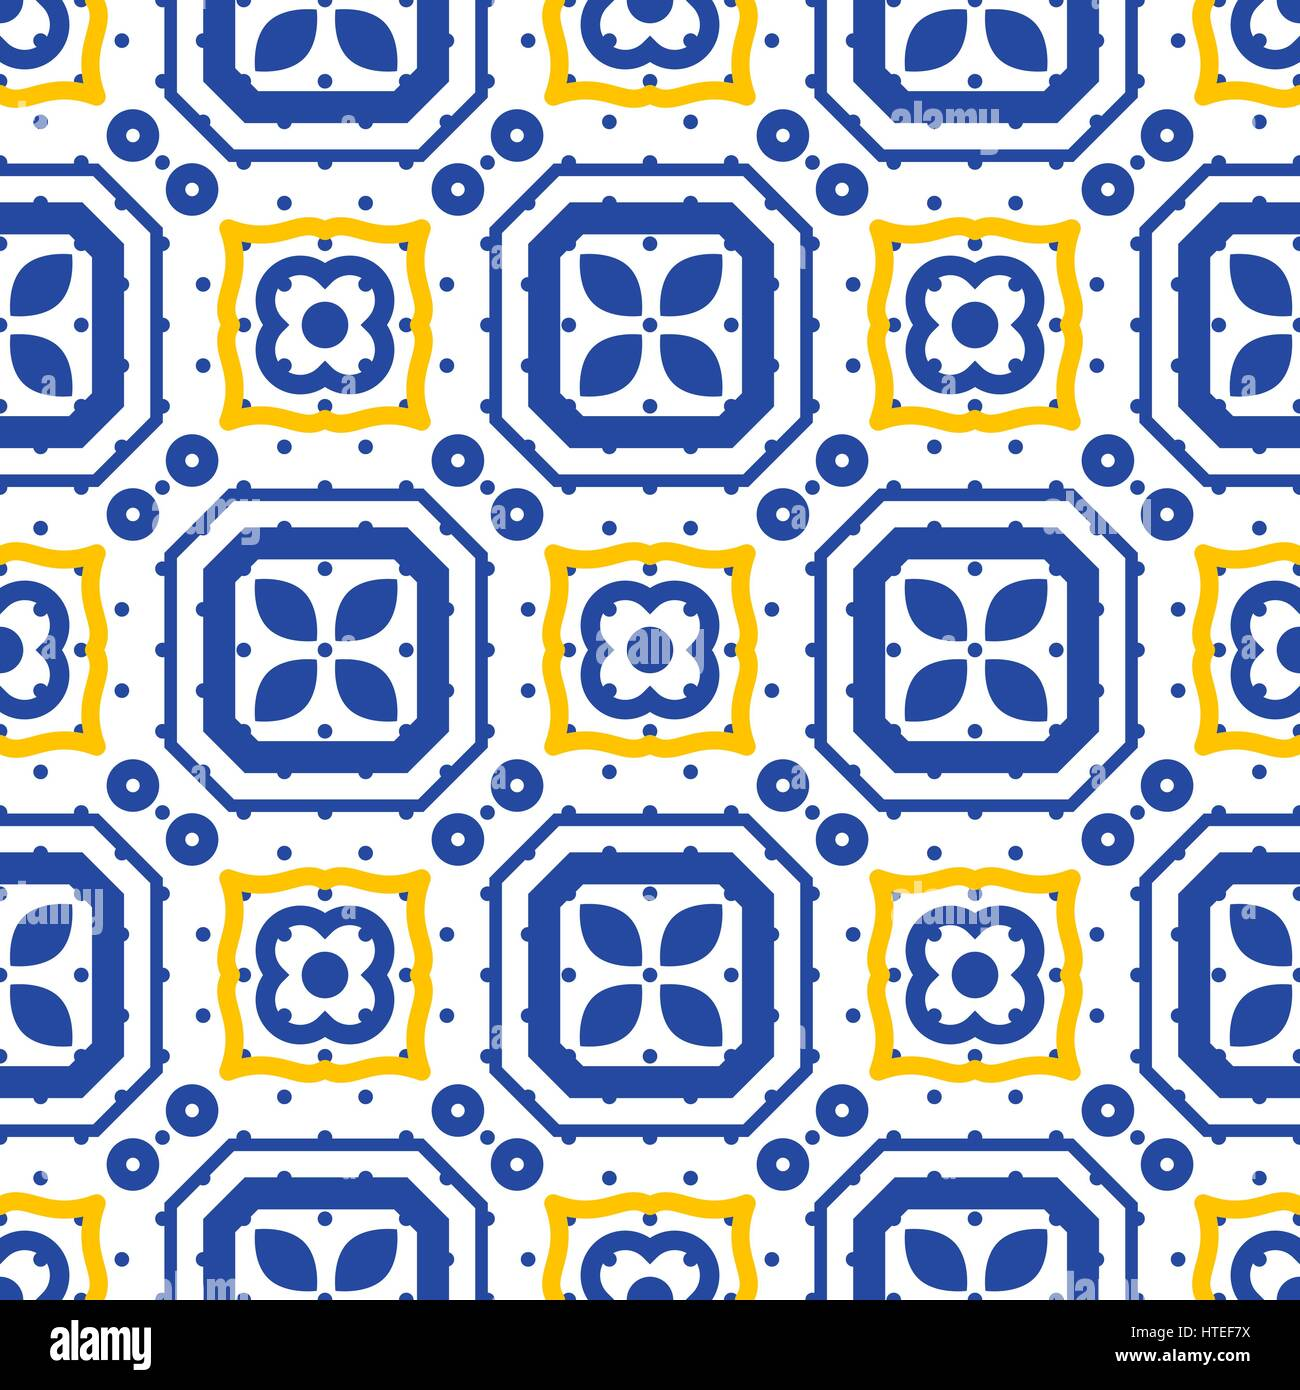 Ceramic Tile Vector Vectors Stock Photos & Ceramic Tile Vector ...